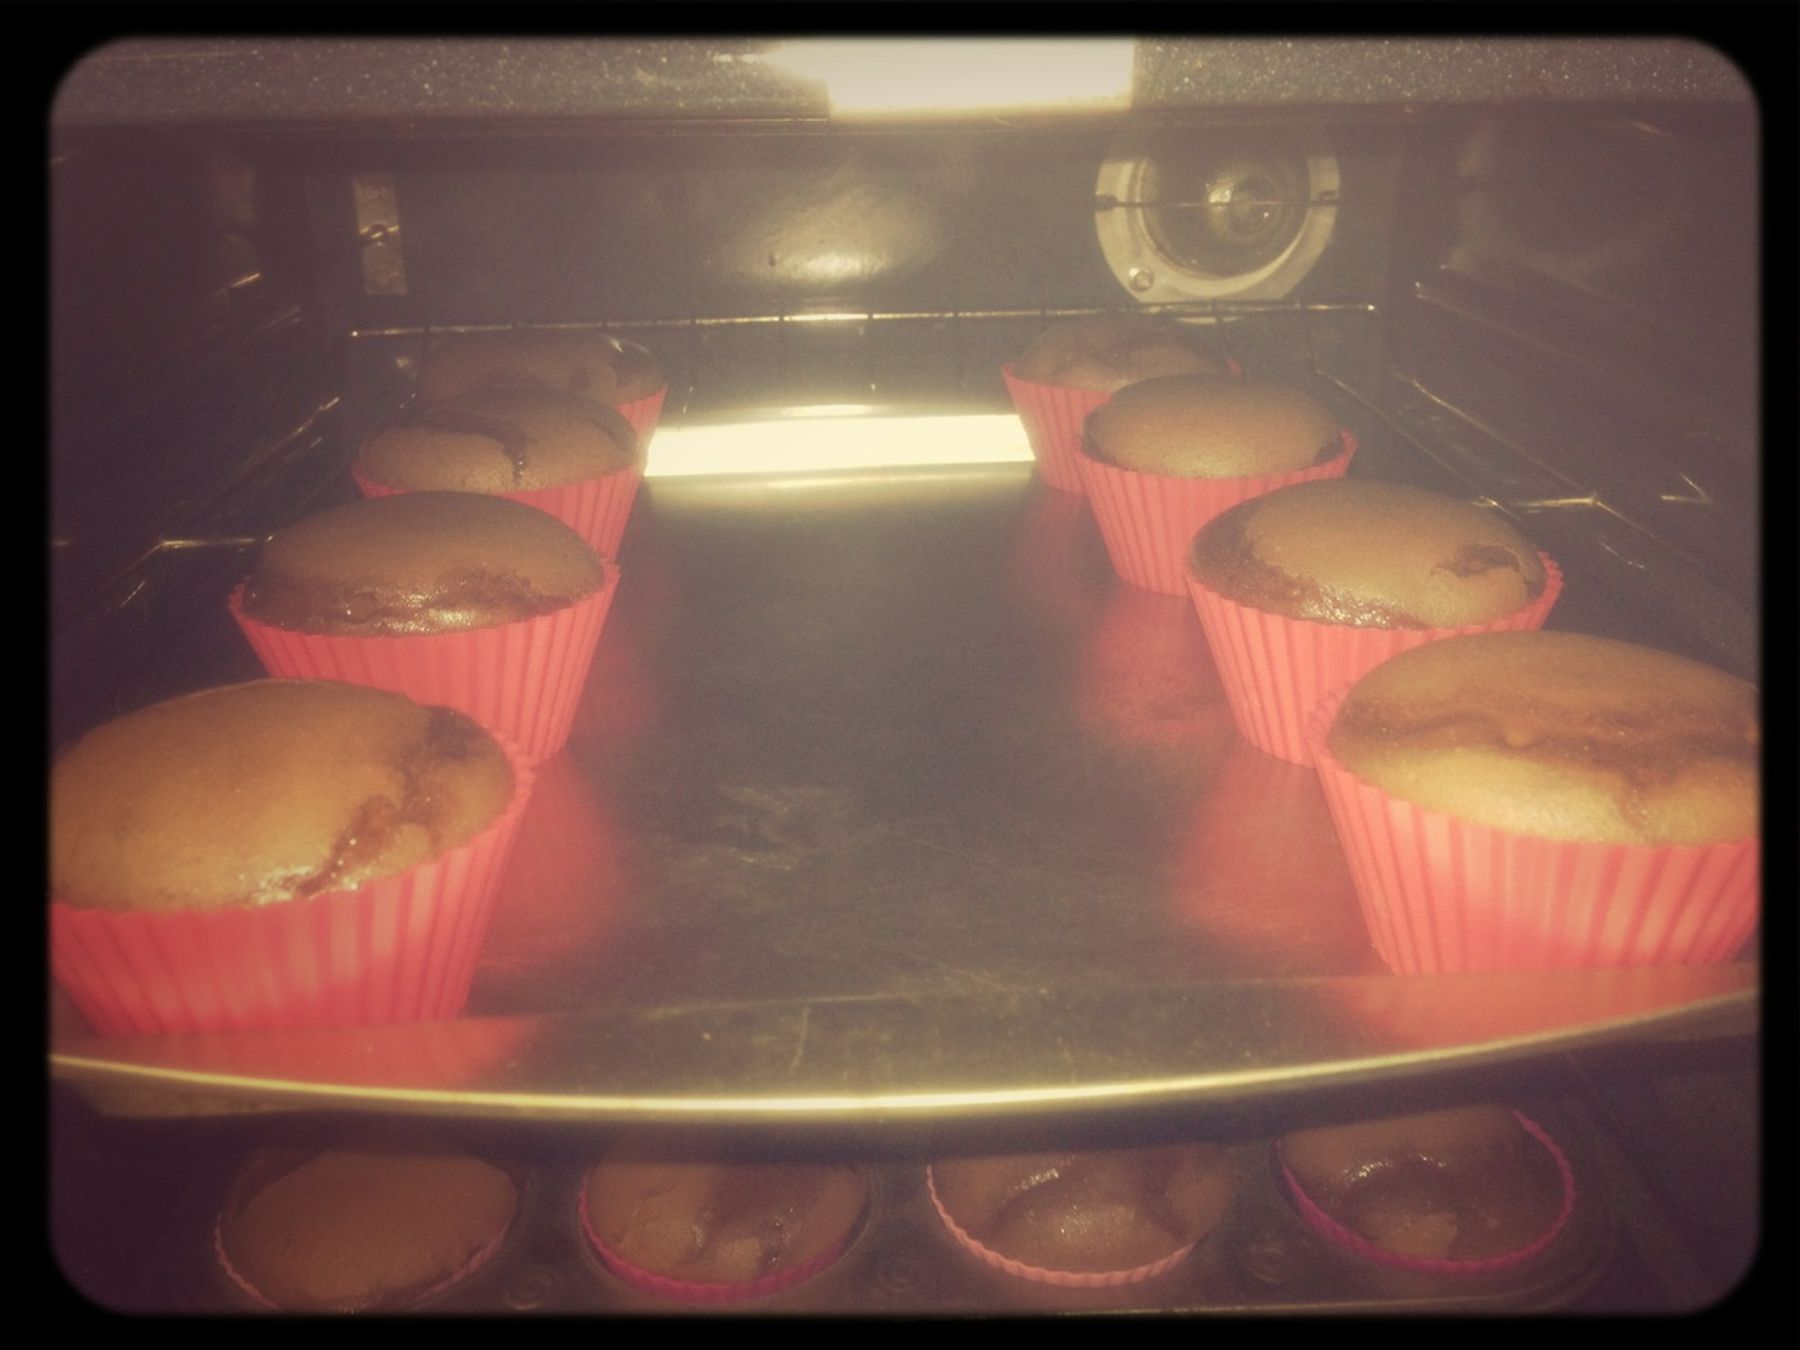 Baking For My Husband ;)